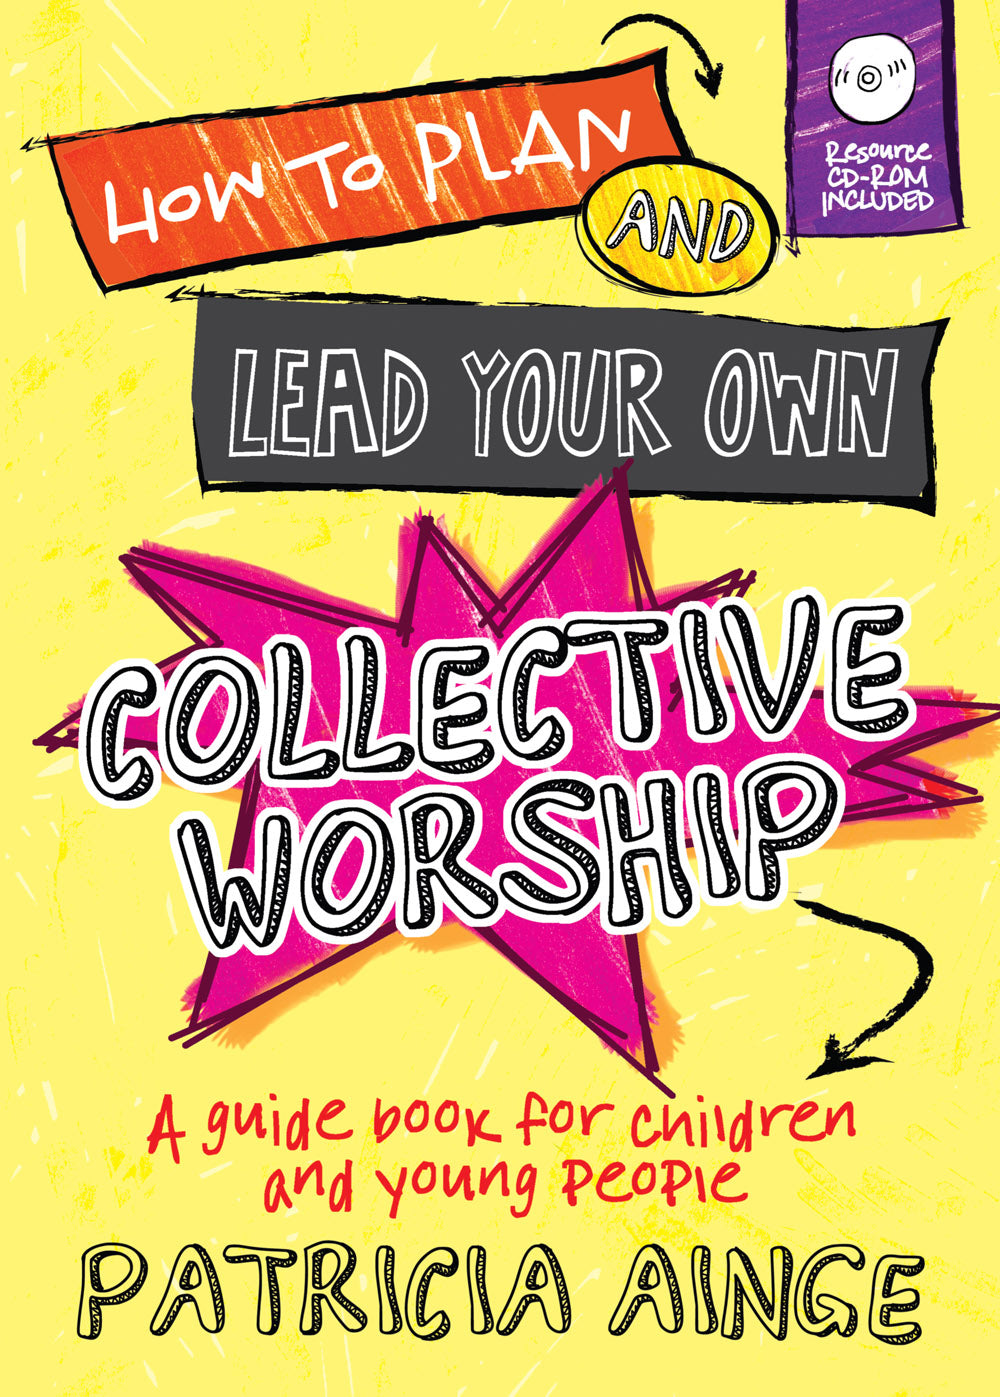 How To Plan And Lead Your Own Collective Worship + Cd RomHow To Plan And Lead Your Own Collective Worship + Cd Rom